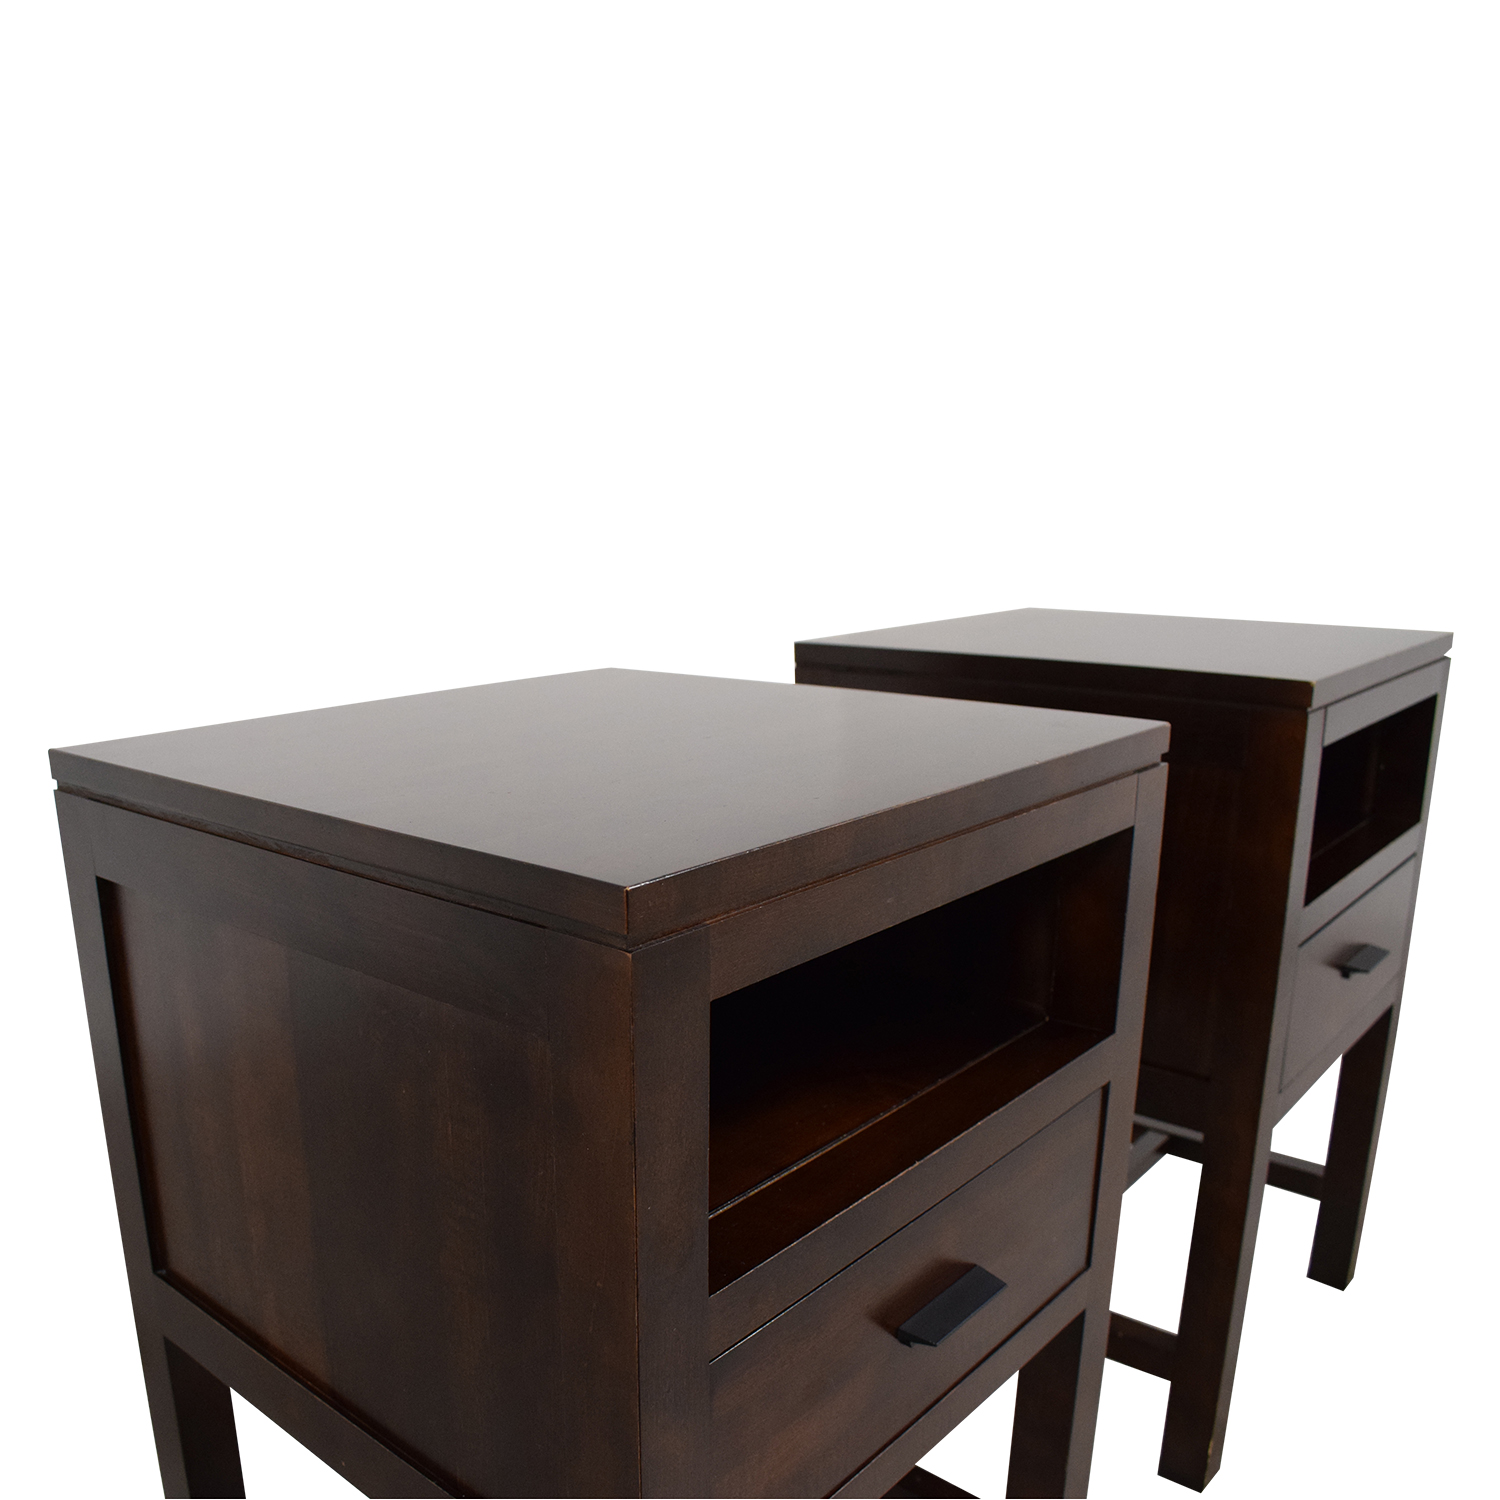 Durham Furniture Maple Wood Night Stands / End Tables